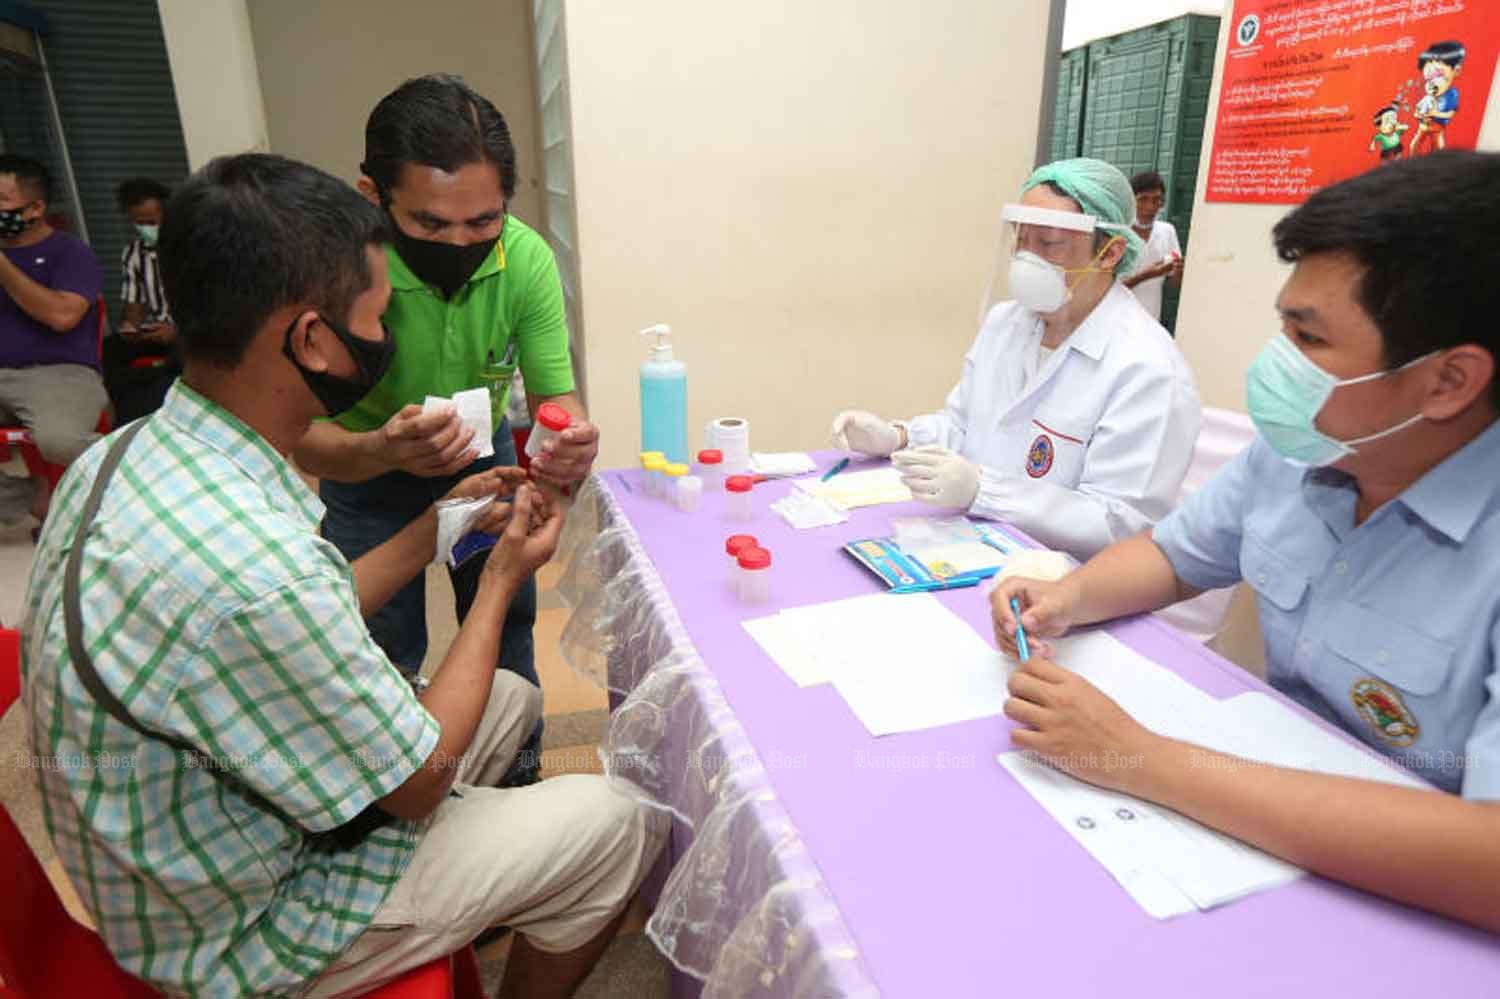 Health volunteers take part in an activity to raise awareness about Covid-19 among migrant labourers in Muang district in Samut Sakhon province in April. (Photo by Varuth Hirunyatheb)